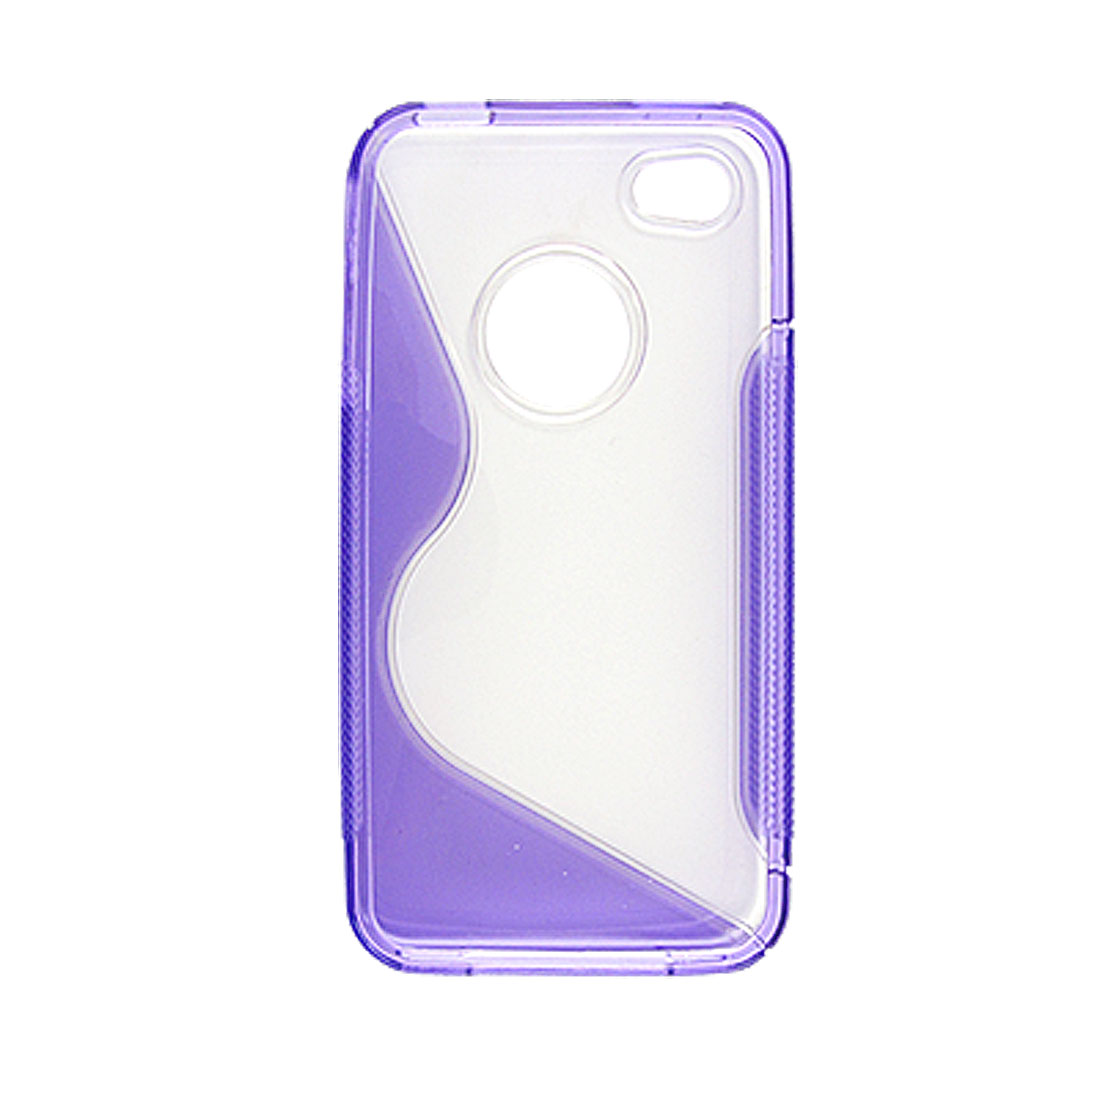 Hard Plastic Cover Clear and Purple for iPhone 4